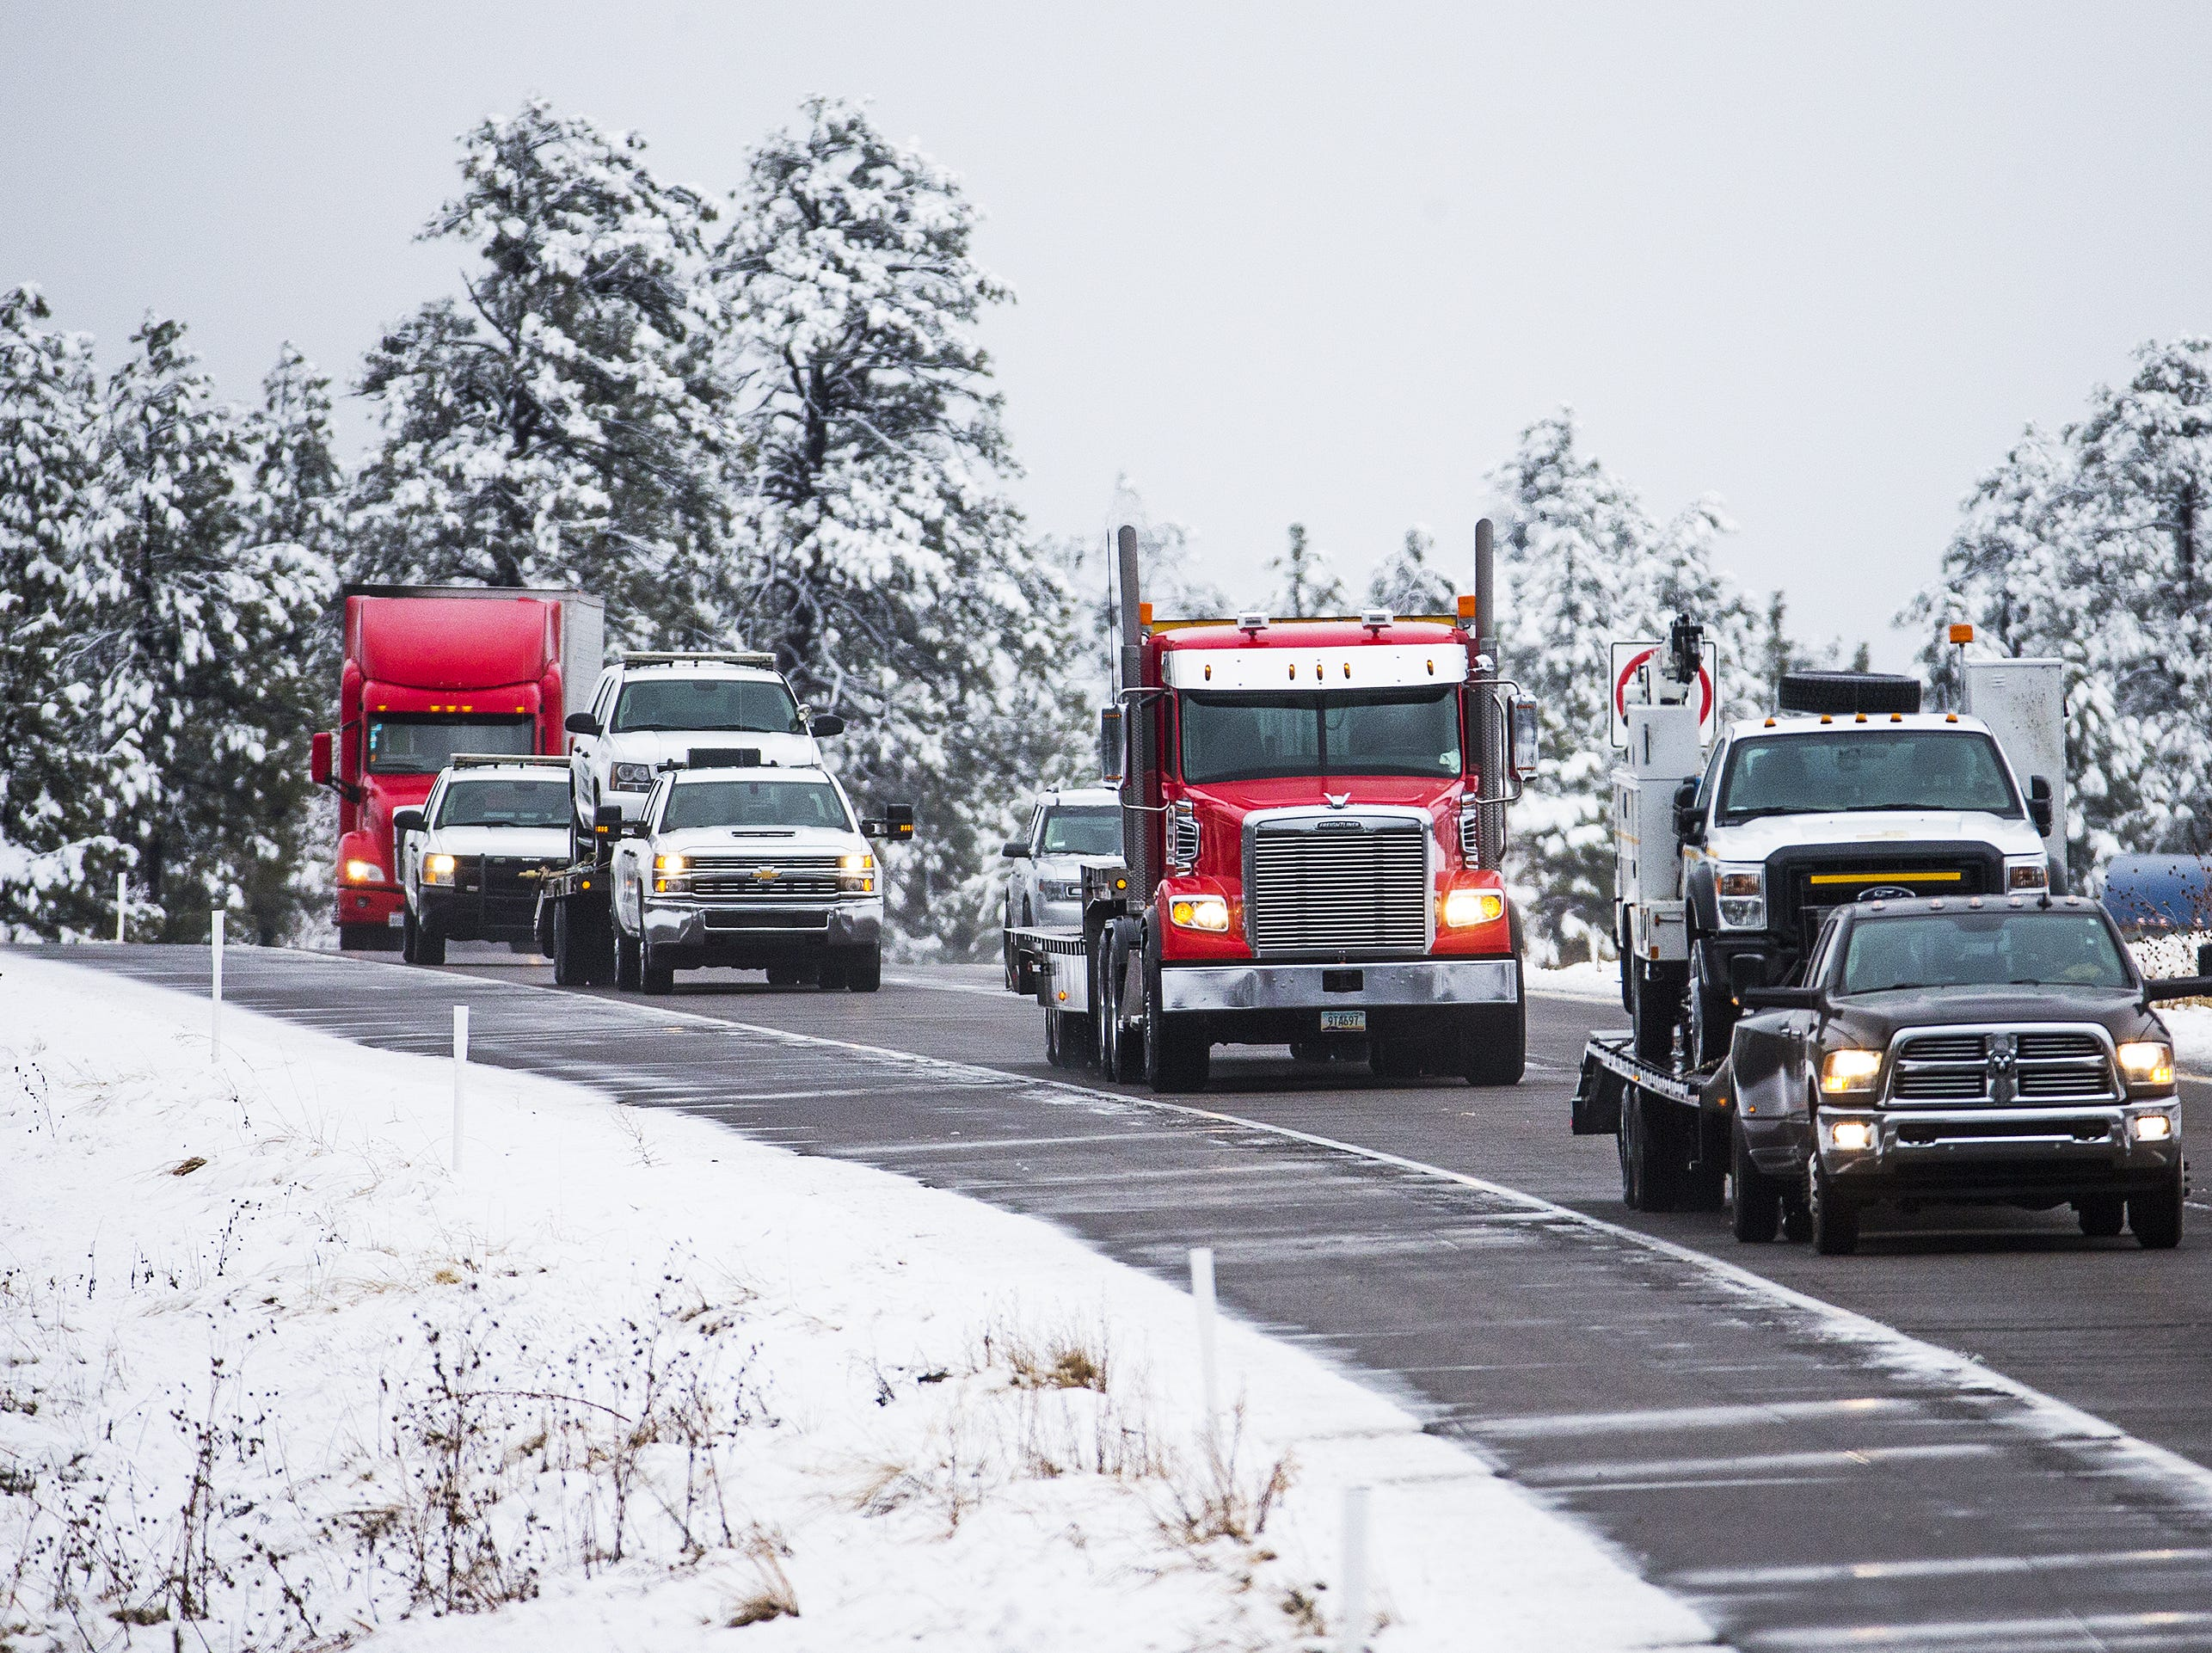 Traffic makes its way south on I-17, 1 mile north of Fox Ranch Road, south of Flagstaff on November 30, 2018. Snow has fallen in northern Arizona causing dangerous driving conditions that have resulted in cars and trucks sliding off the road.